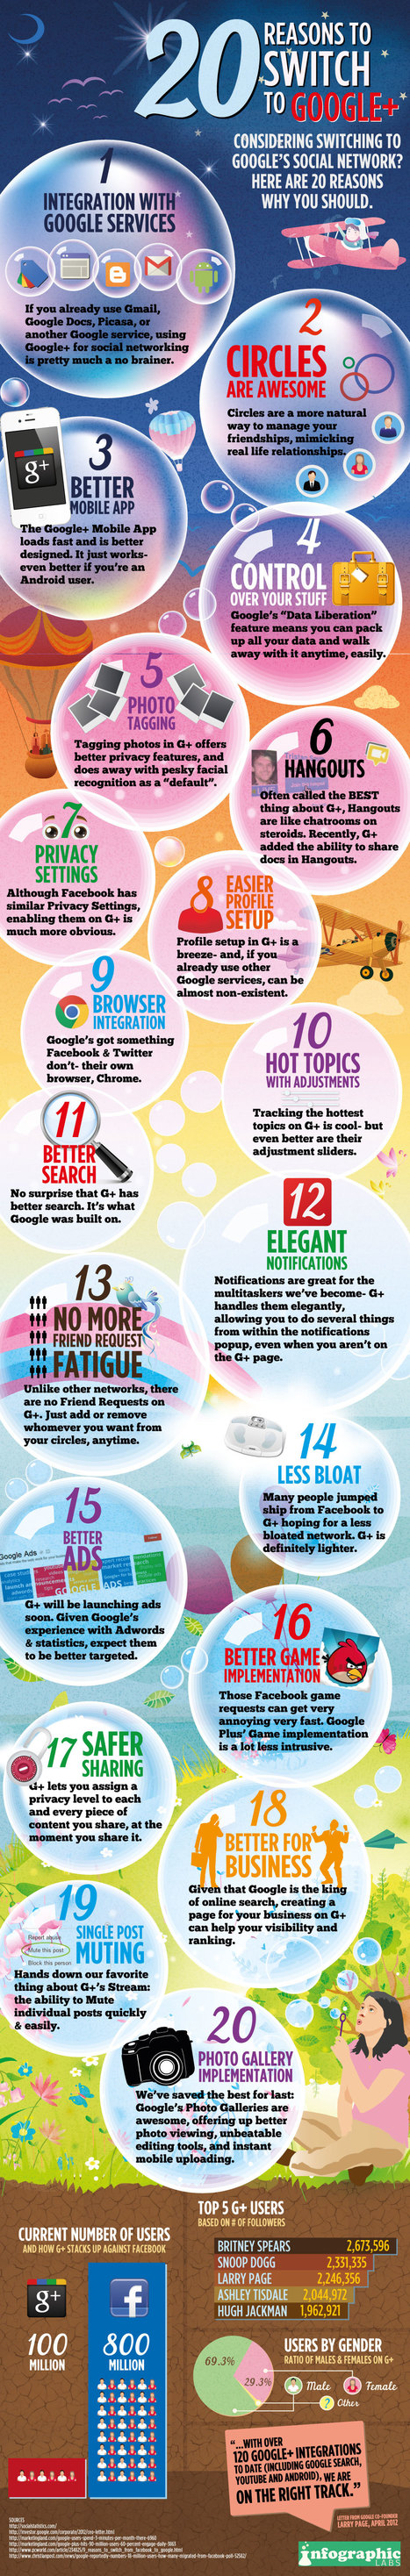 20 Reasons Why you Should Use Google Plus [Infographic] | Web2.0 et langues | Scoop.it